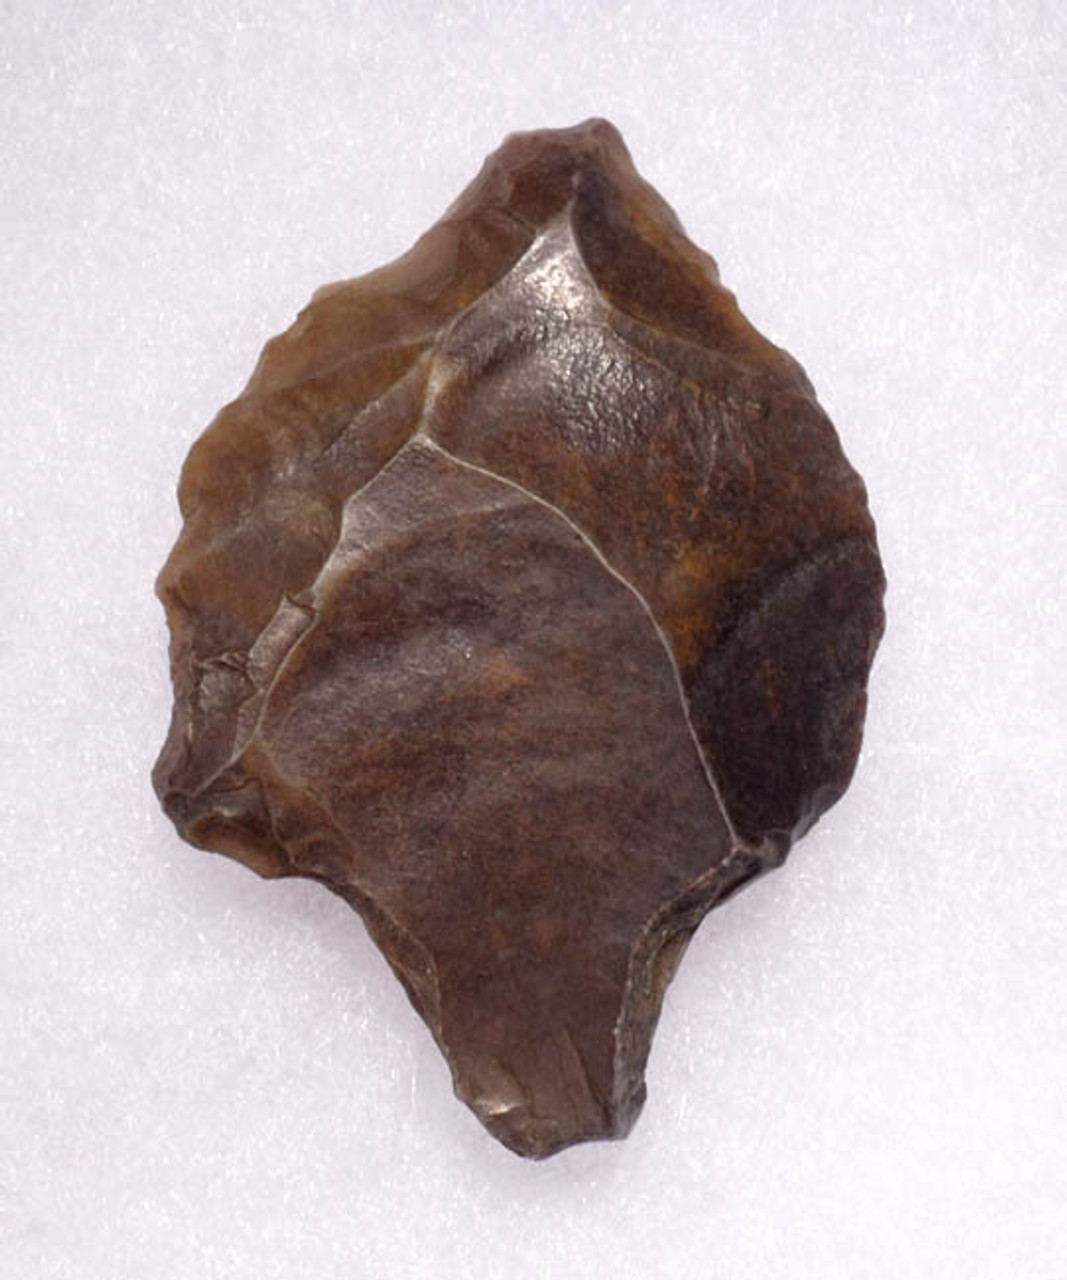 OLDEST TANGED ARROWHEAD